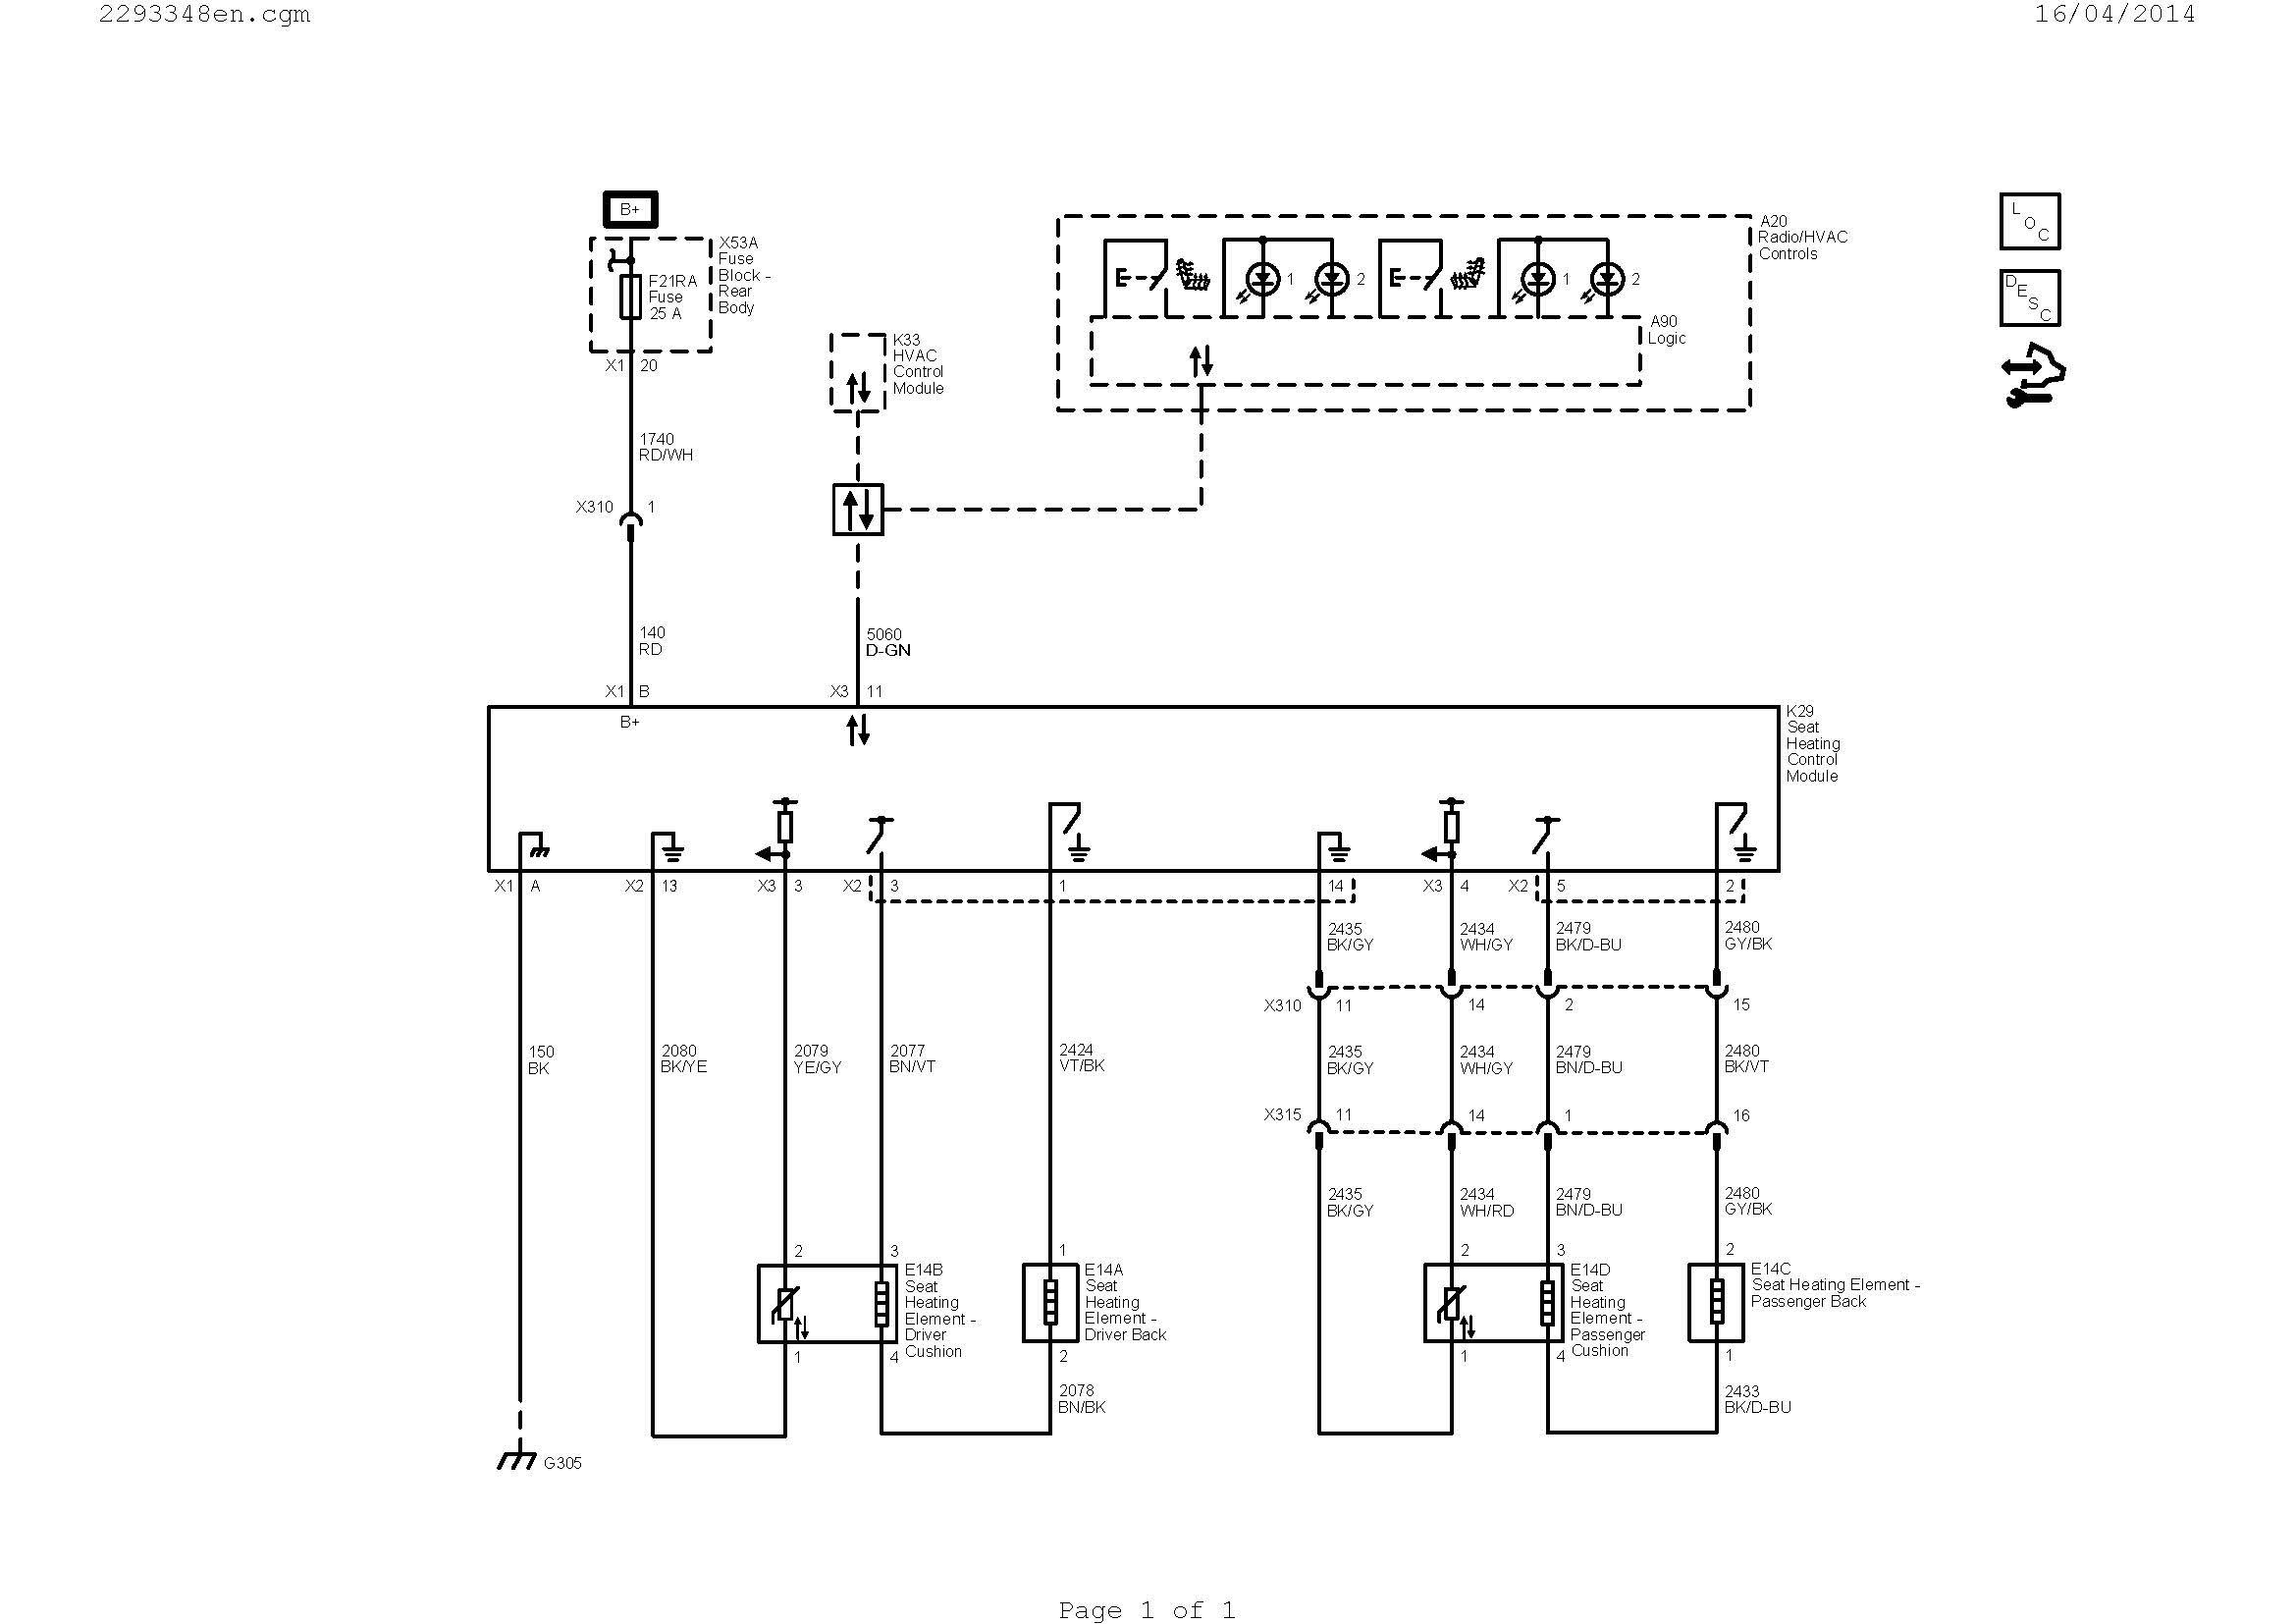 Nest Thermostat 3rd Generation Wiring Diagram